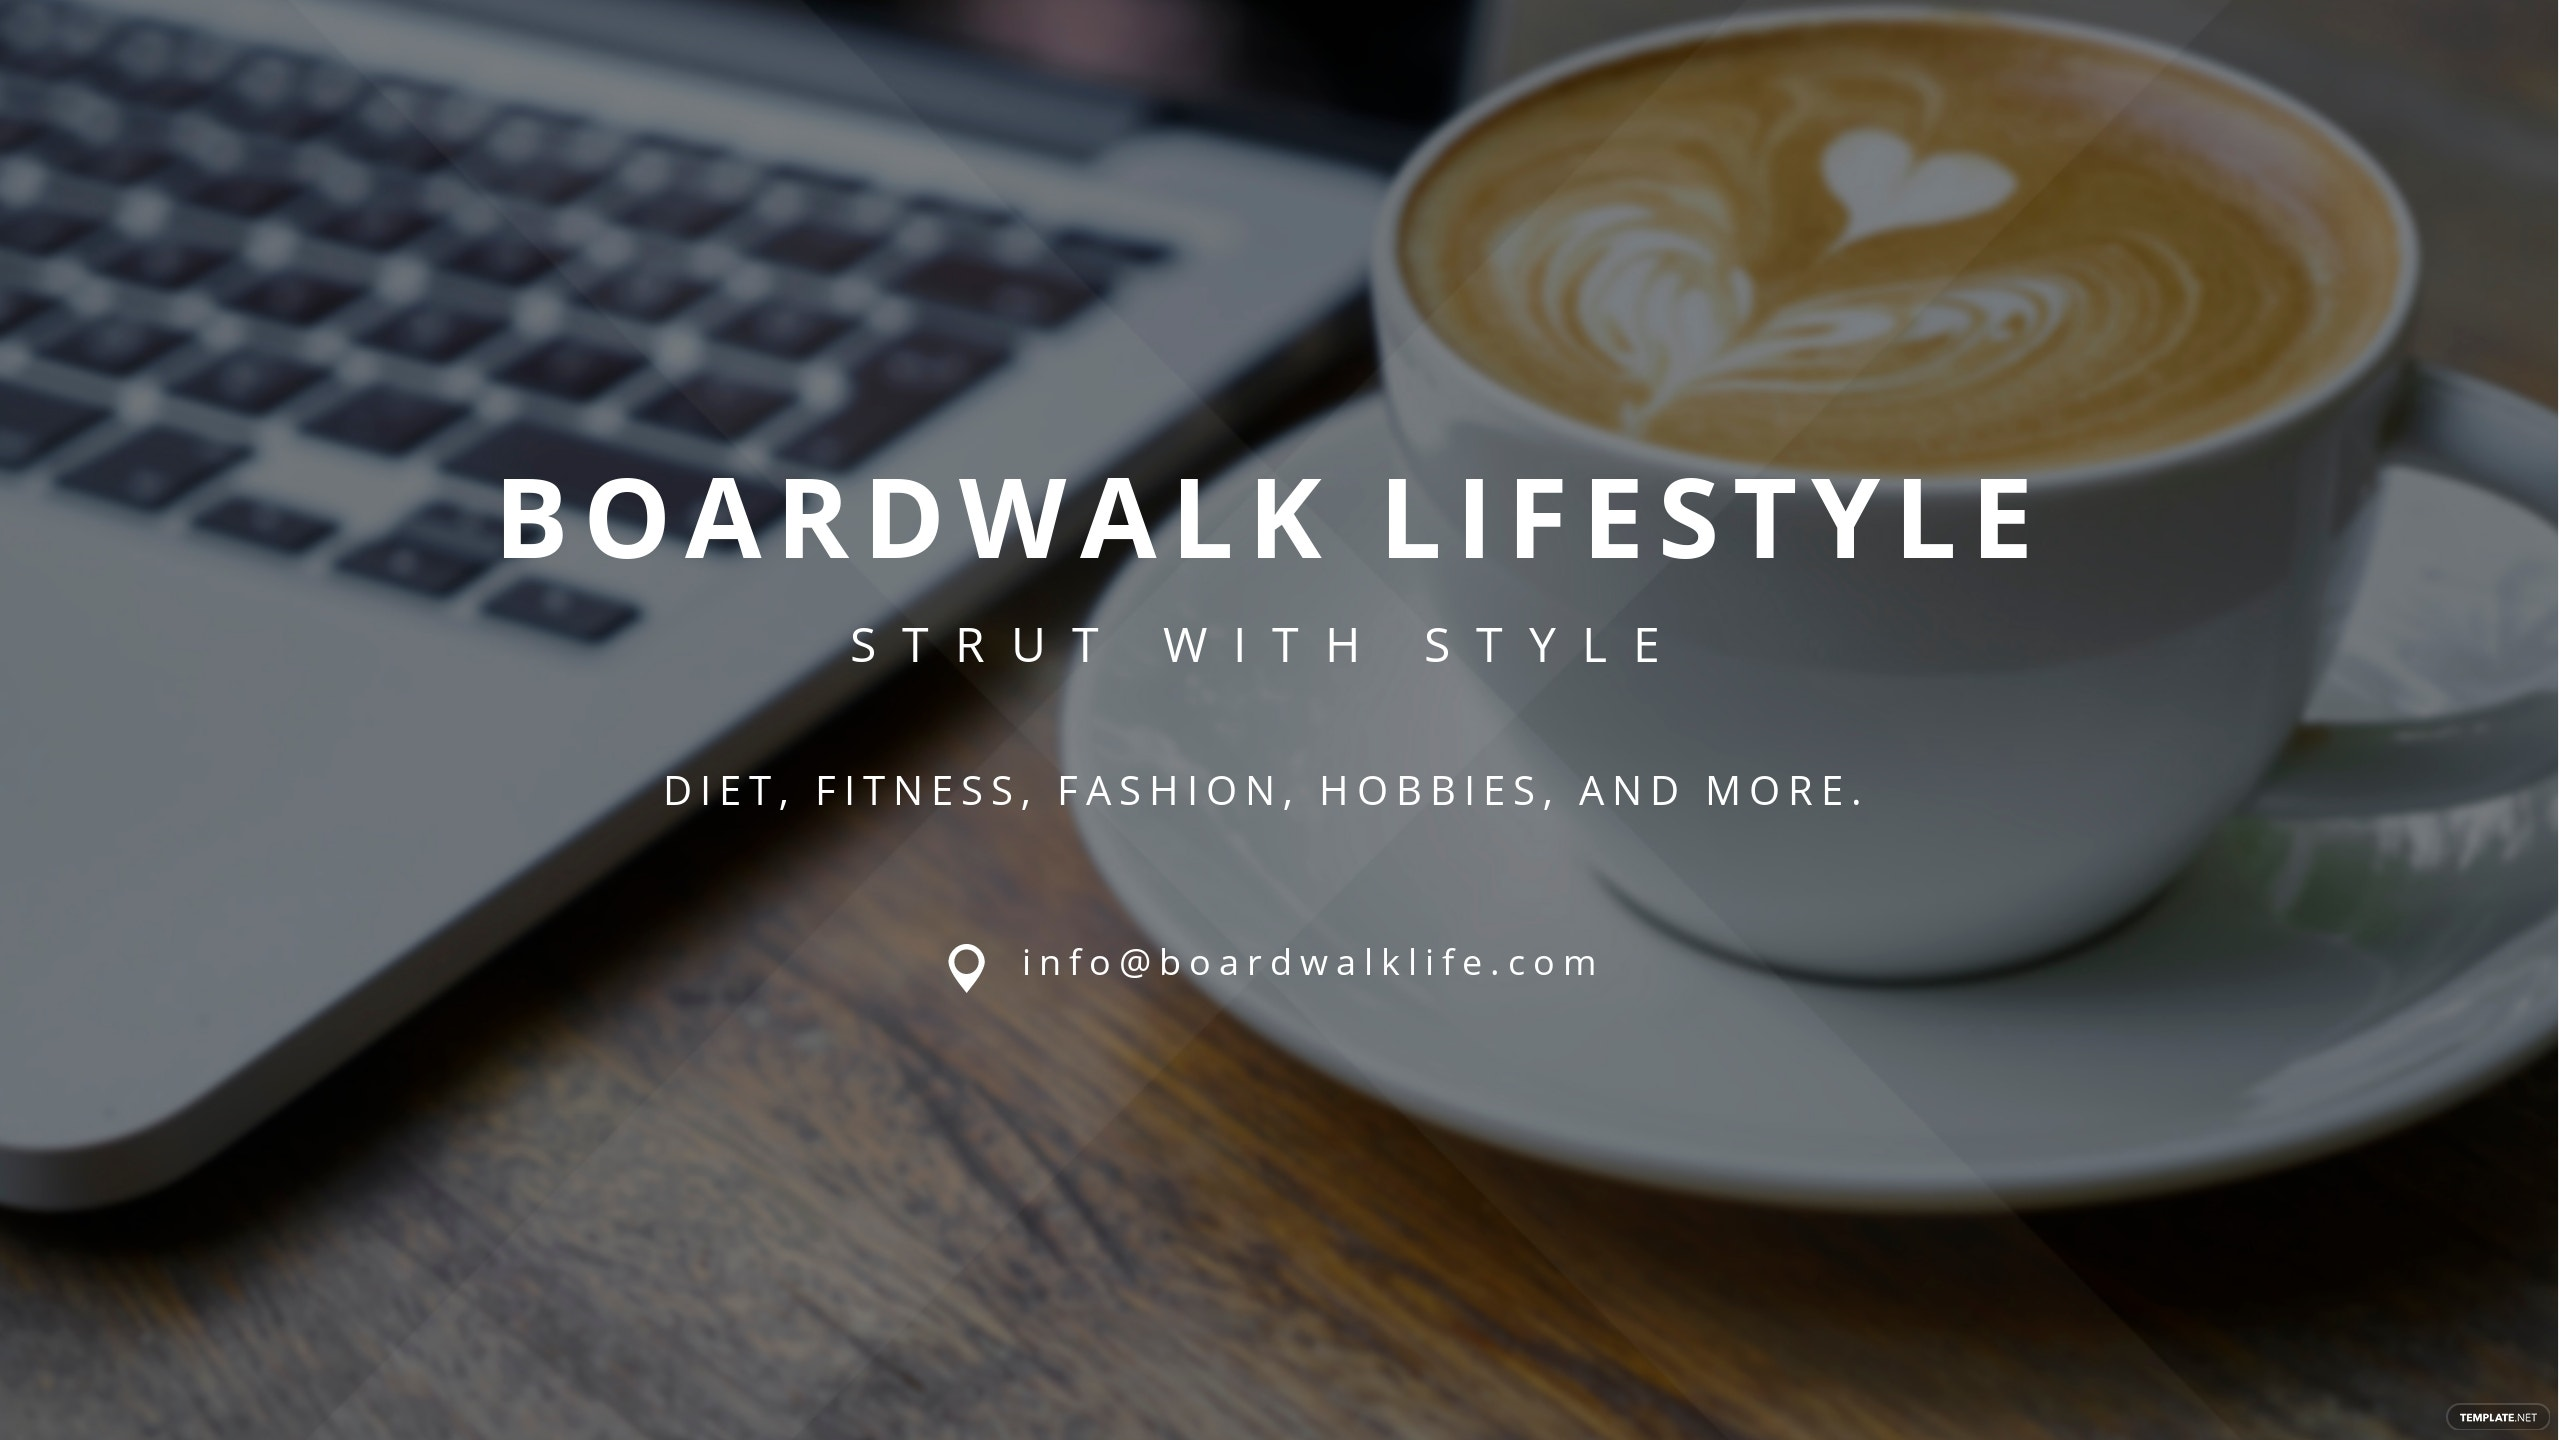 Lifestyle Channel Art for YouTube Template